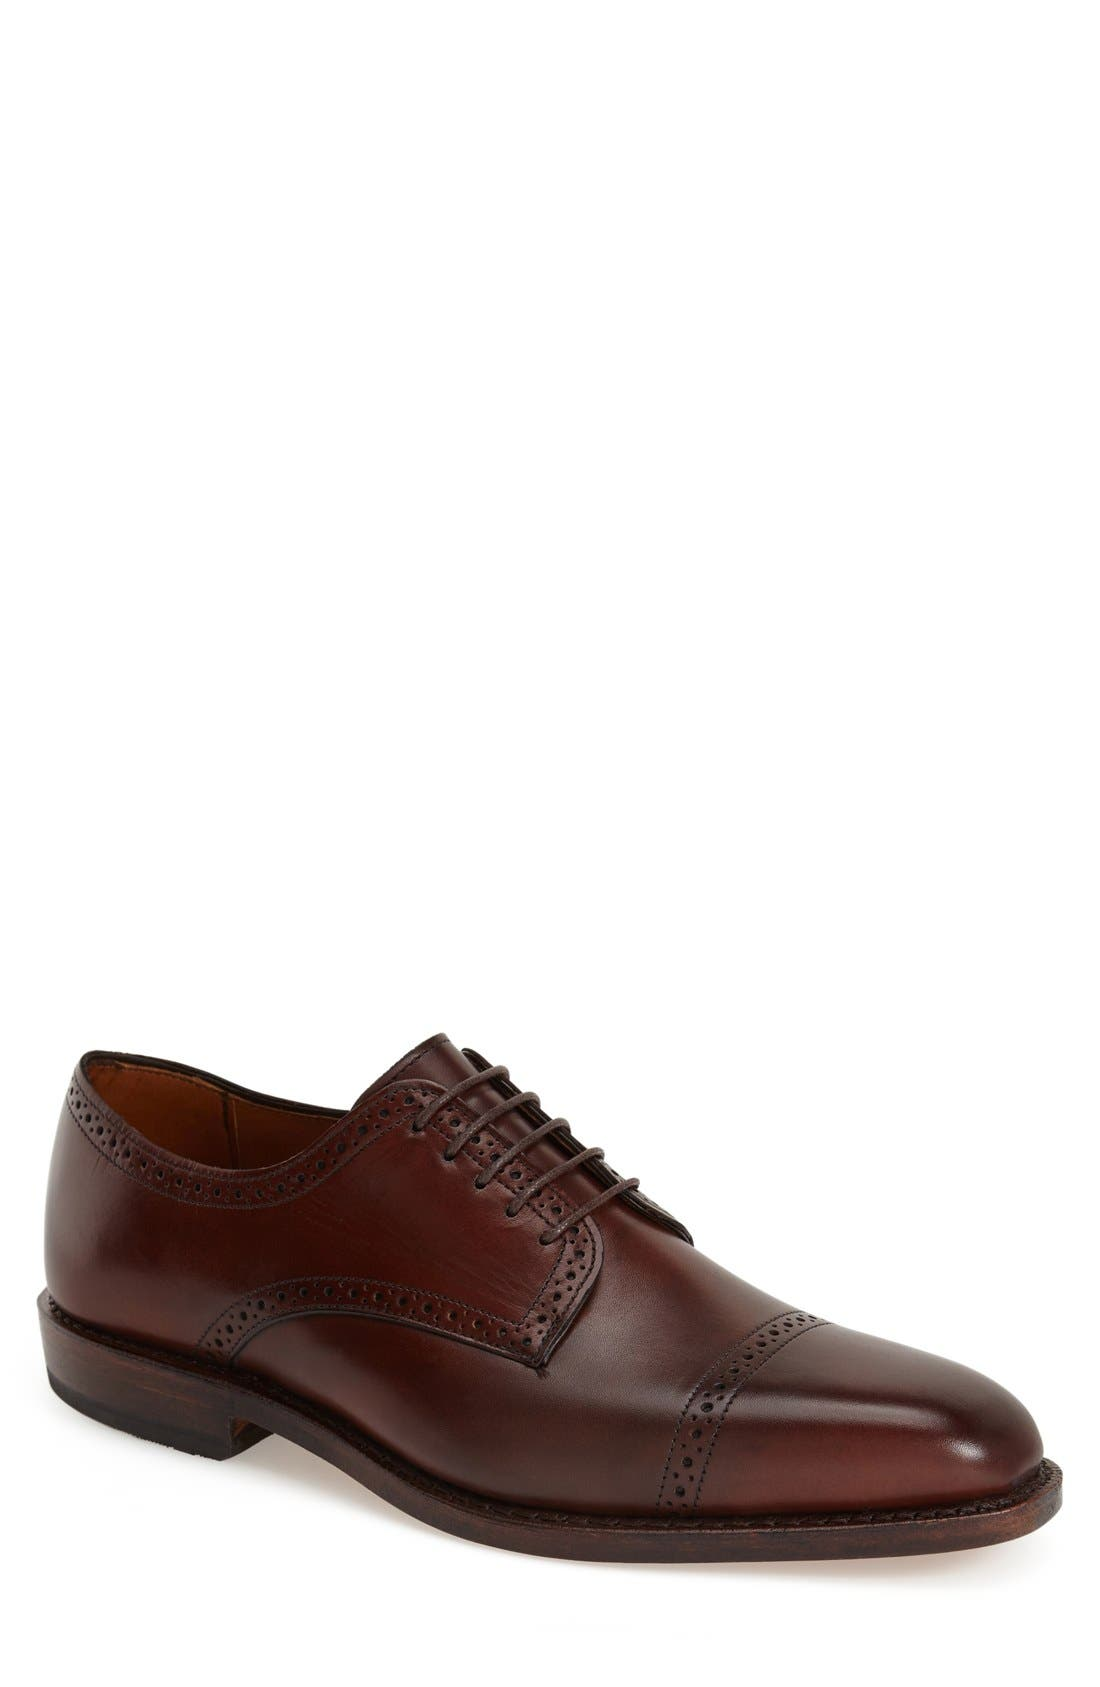 ALLEN EDMONDS 'Yorktown' Blucher